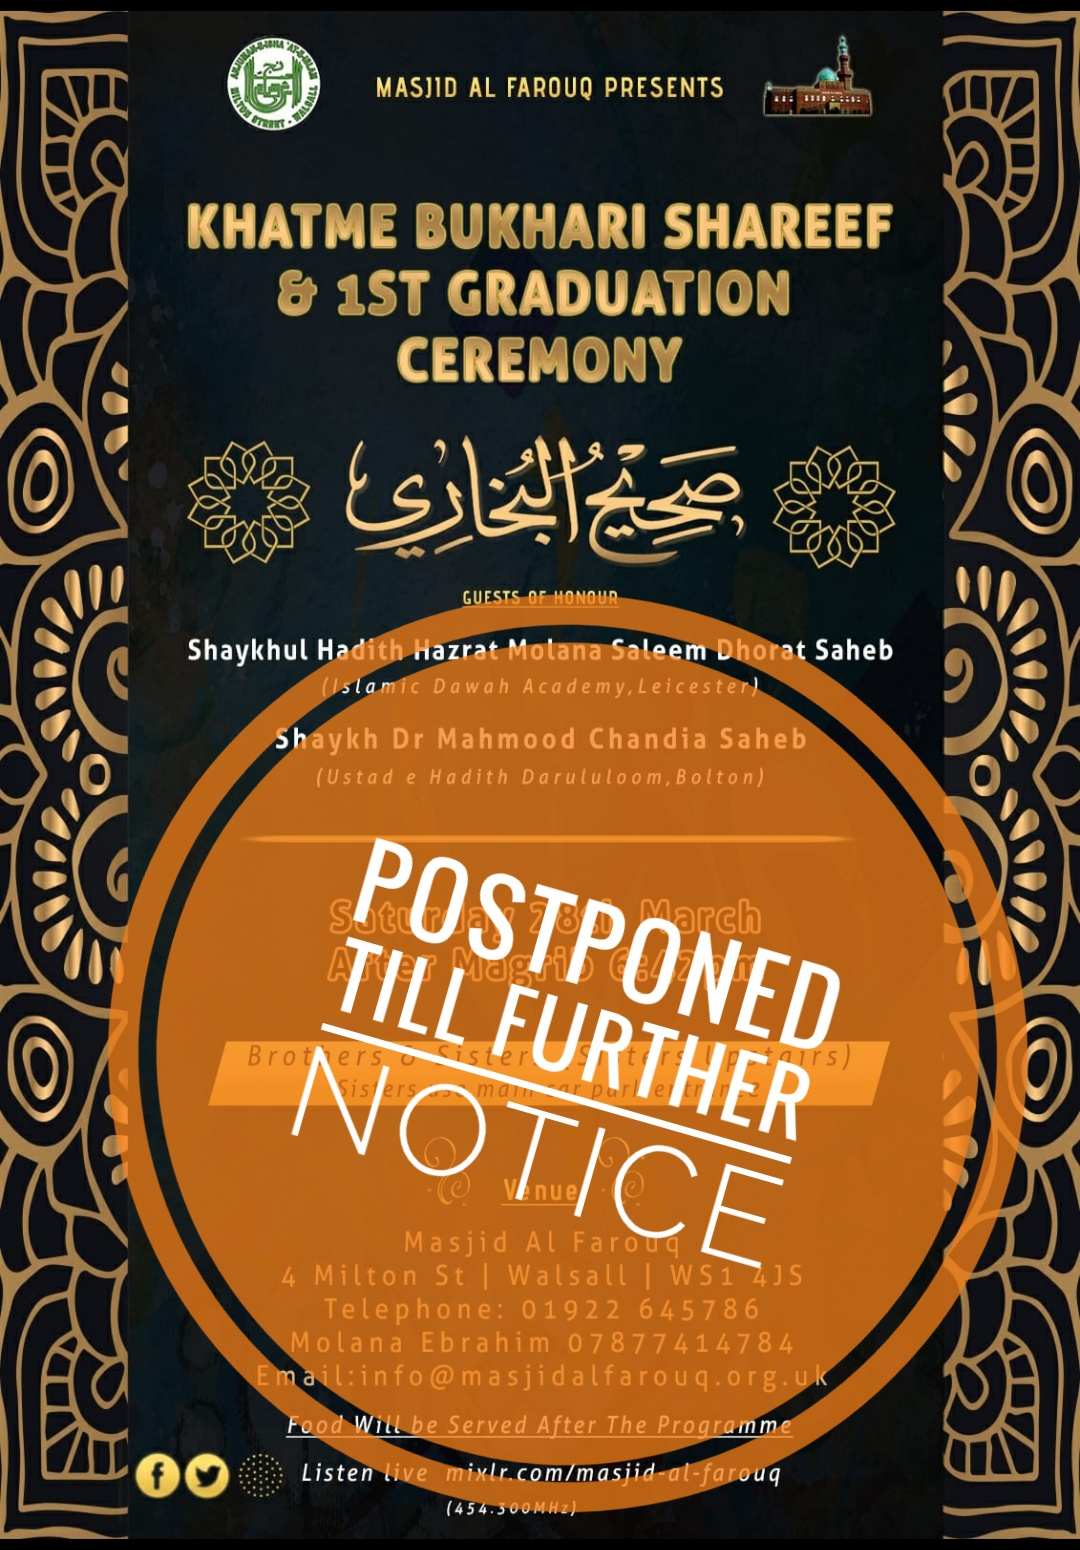 Khatme Bukhari Shareef Event Postponed